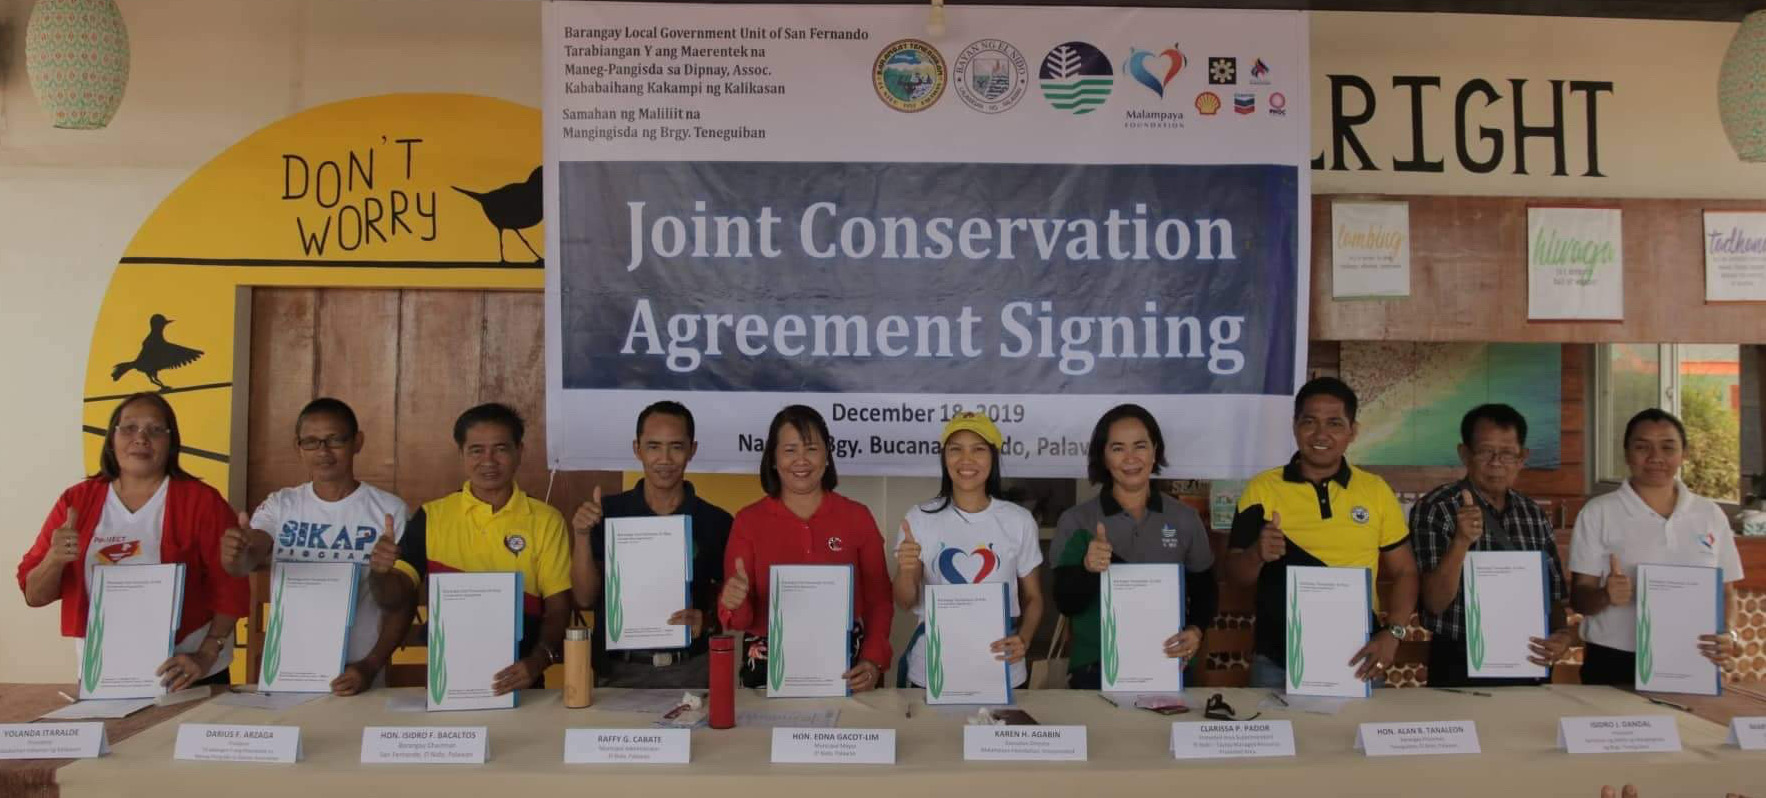 Joint conservation agreement signing